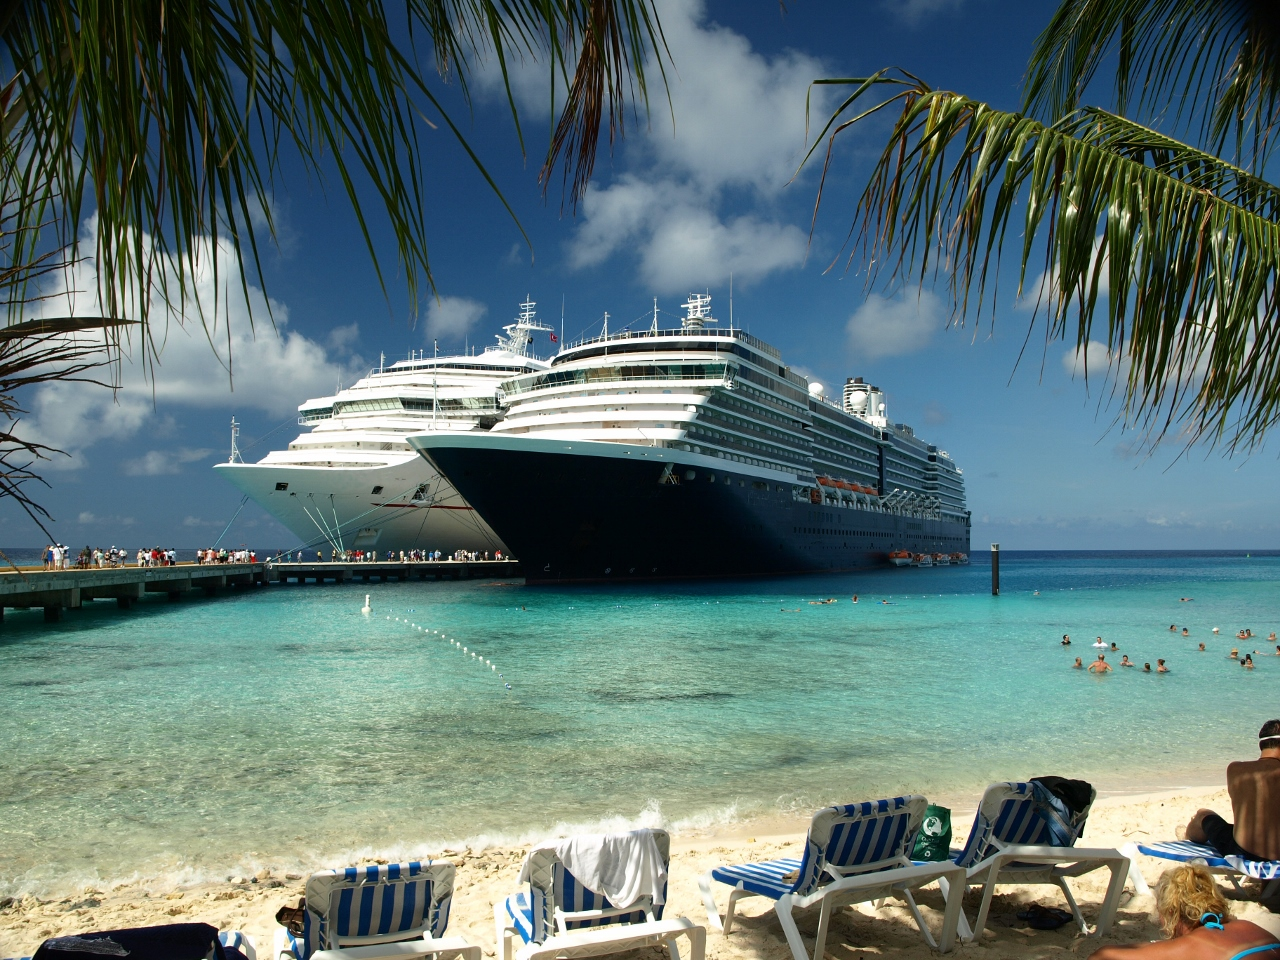 Multiple cruise ships can be found together in Hawaii during peak season.